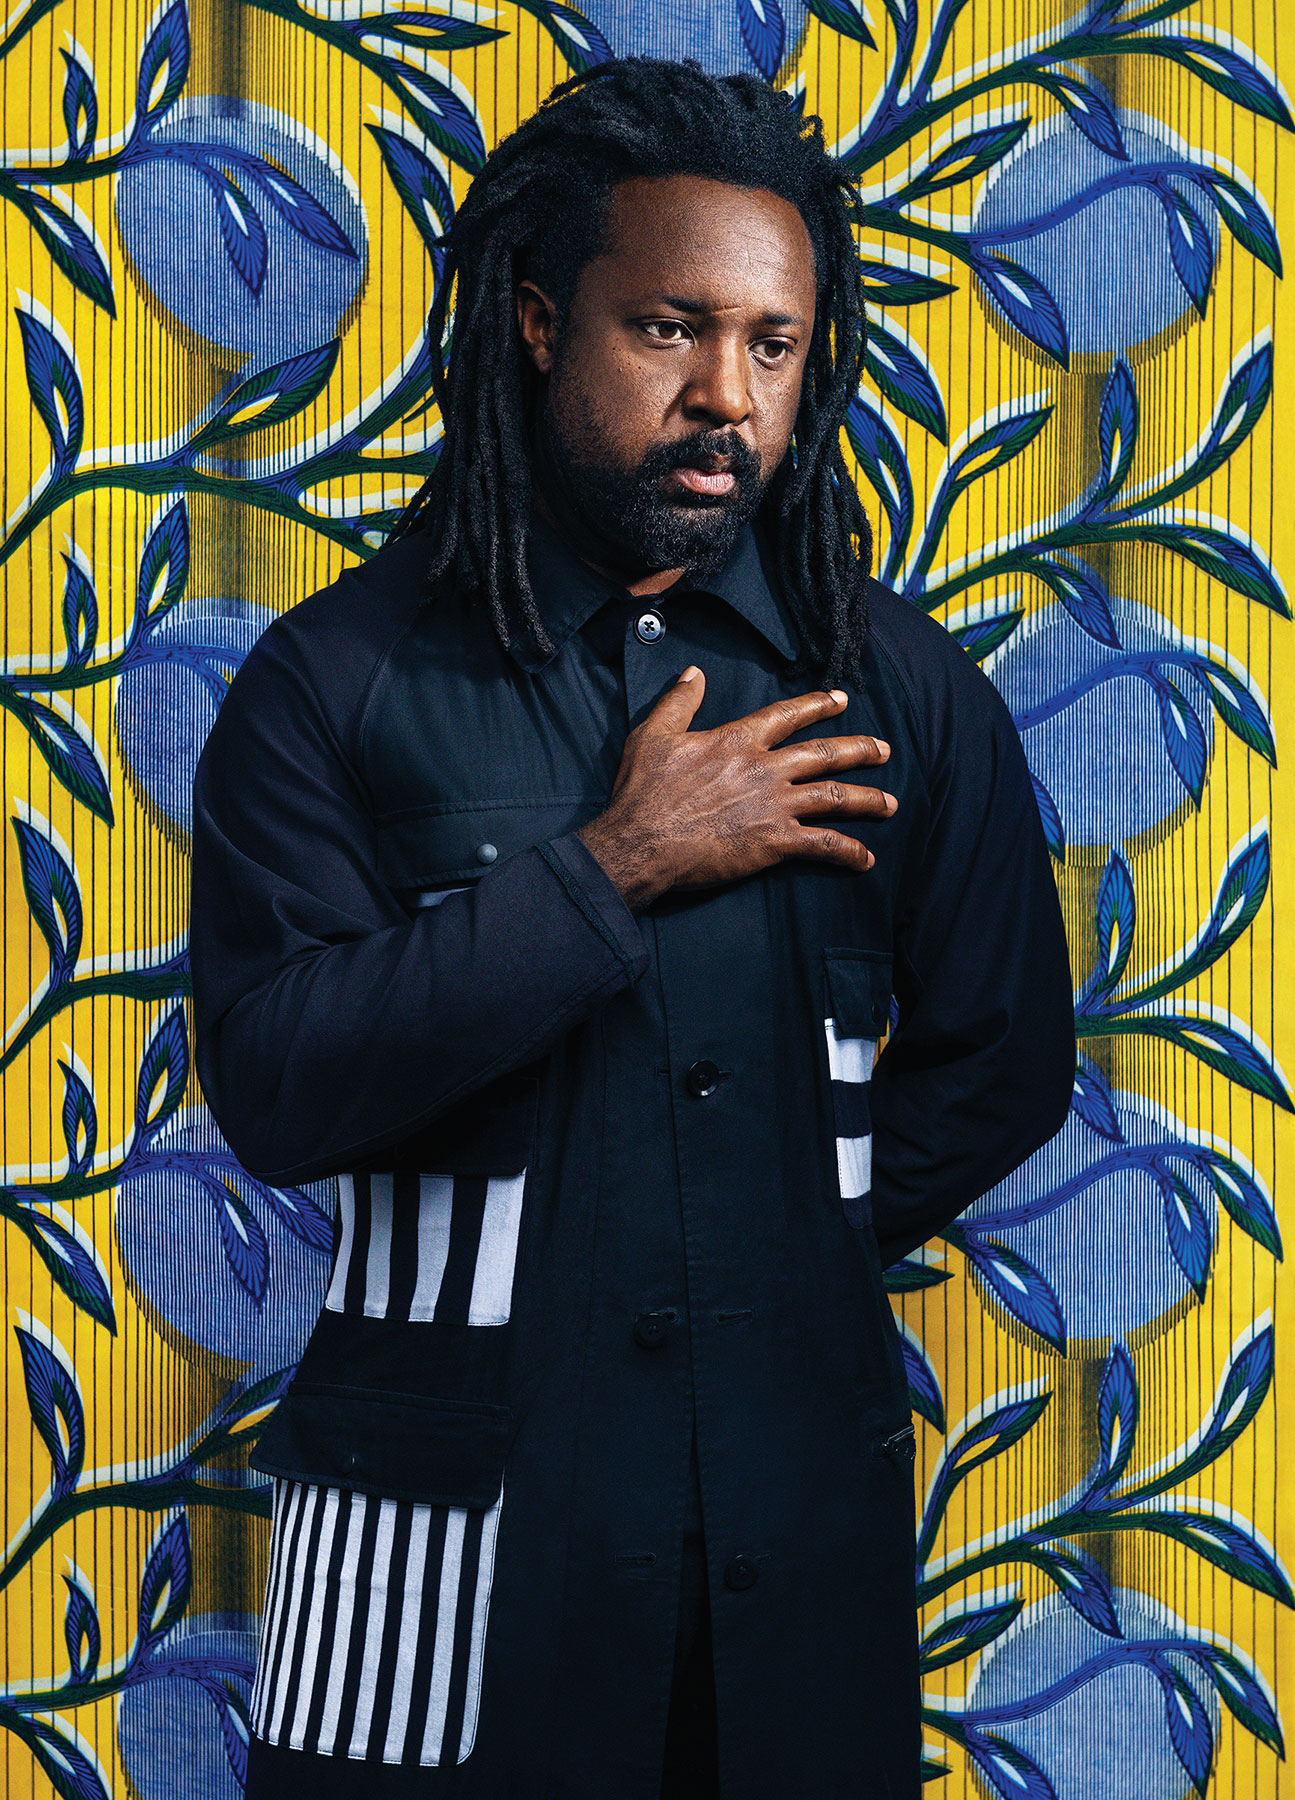 Writer Marlon James